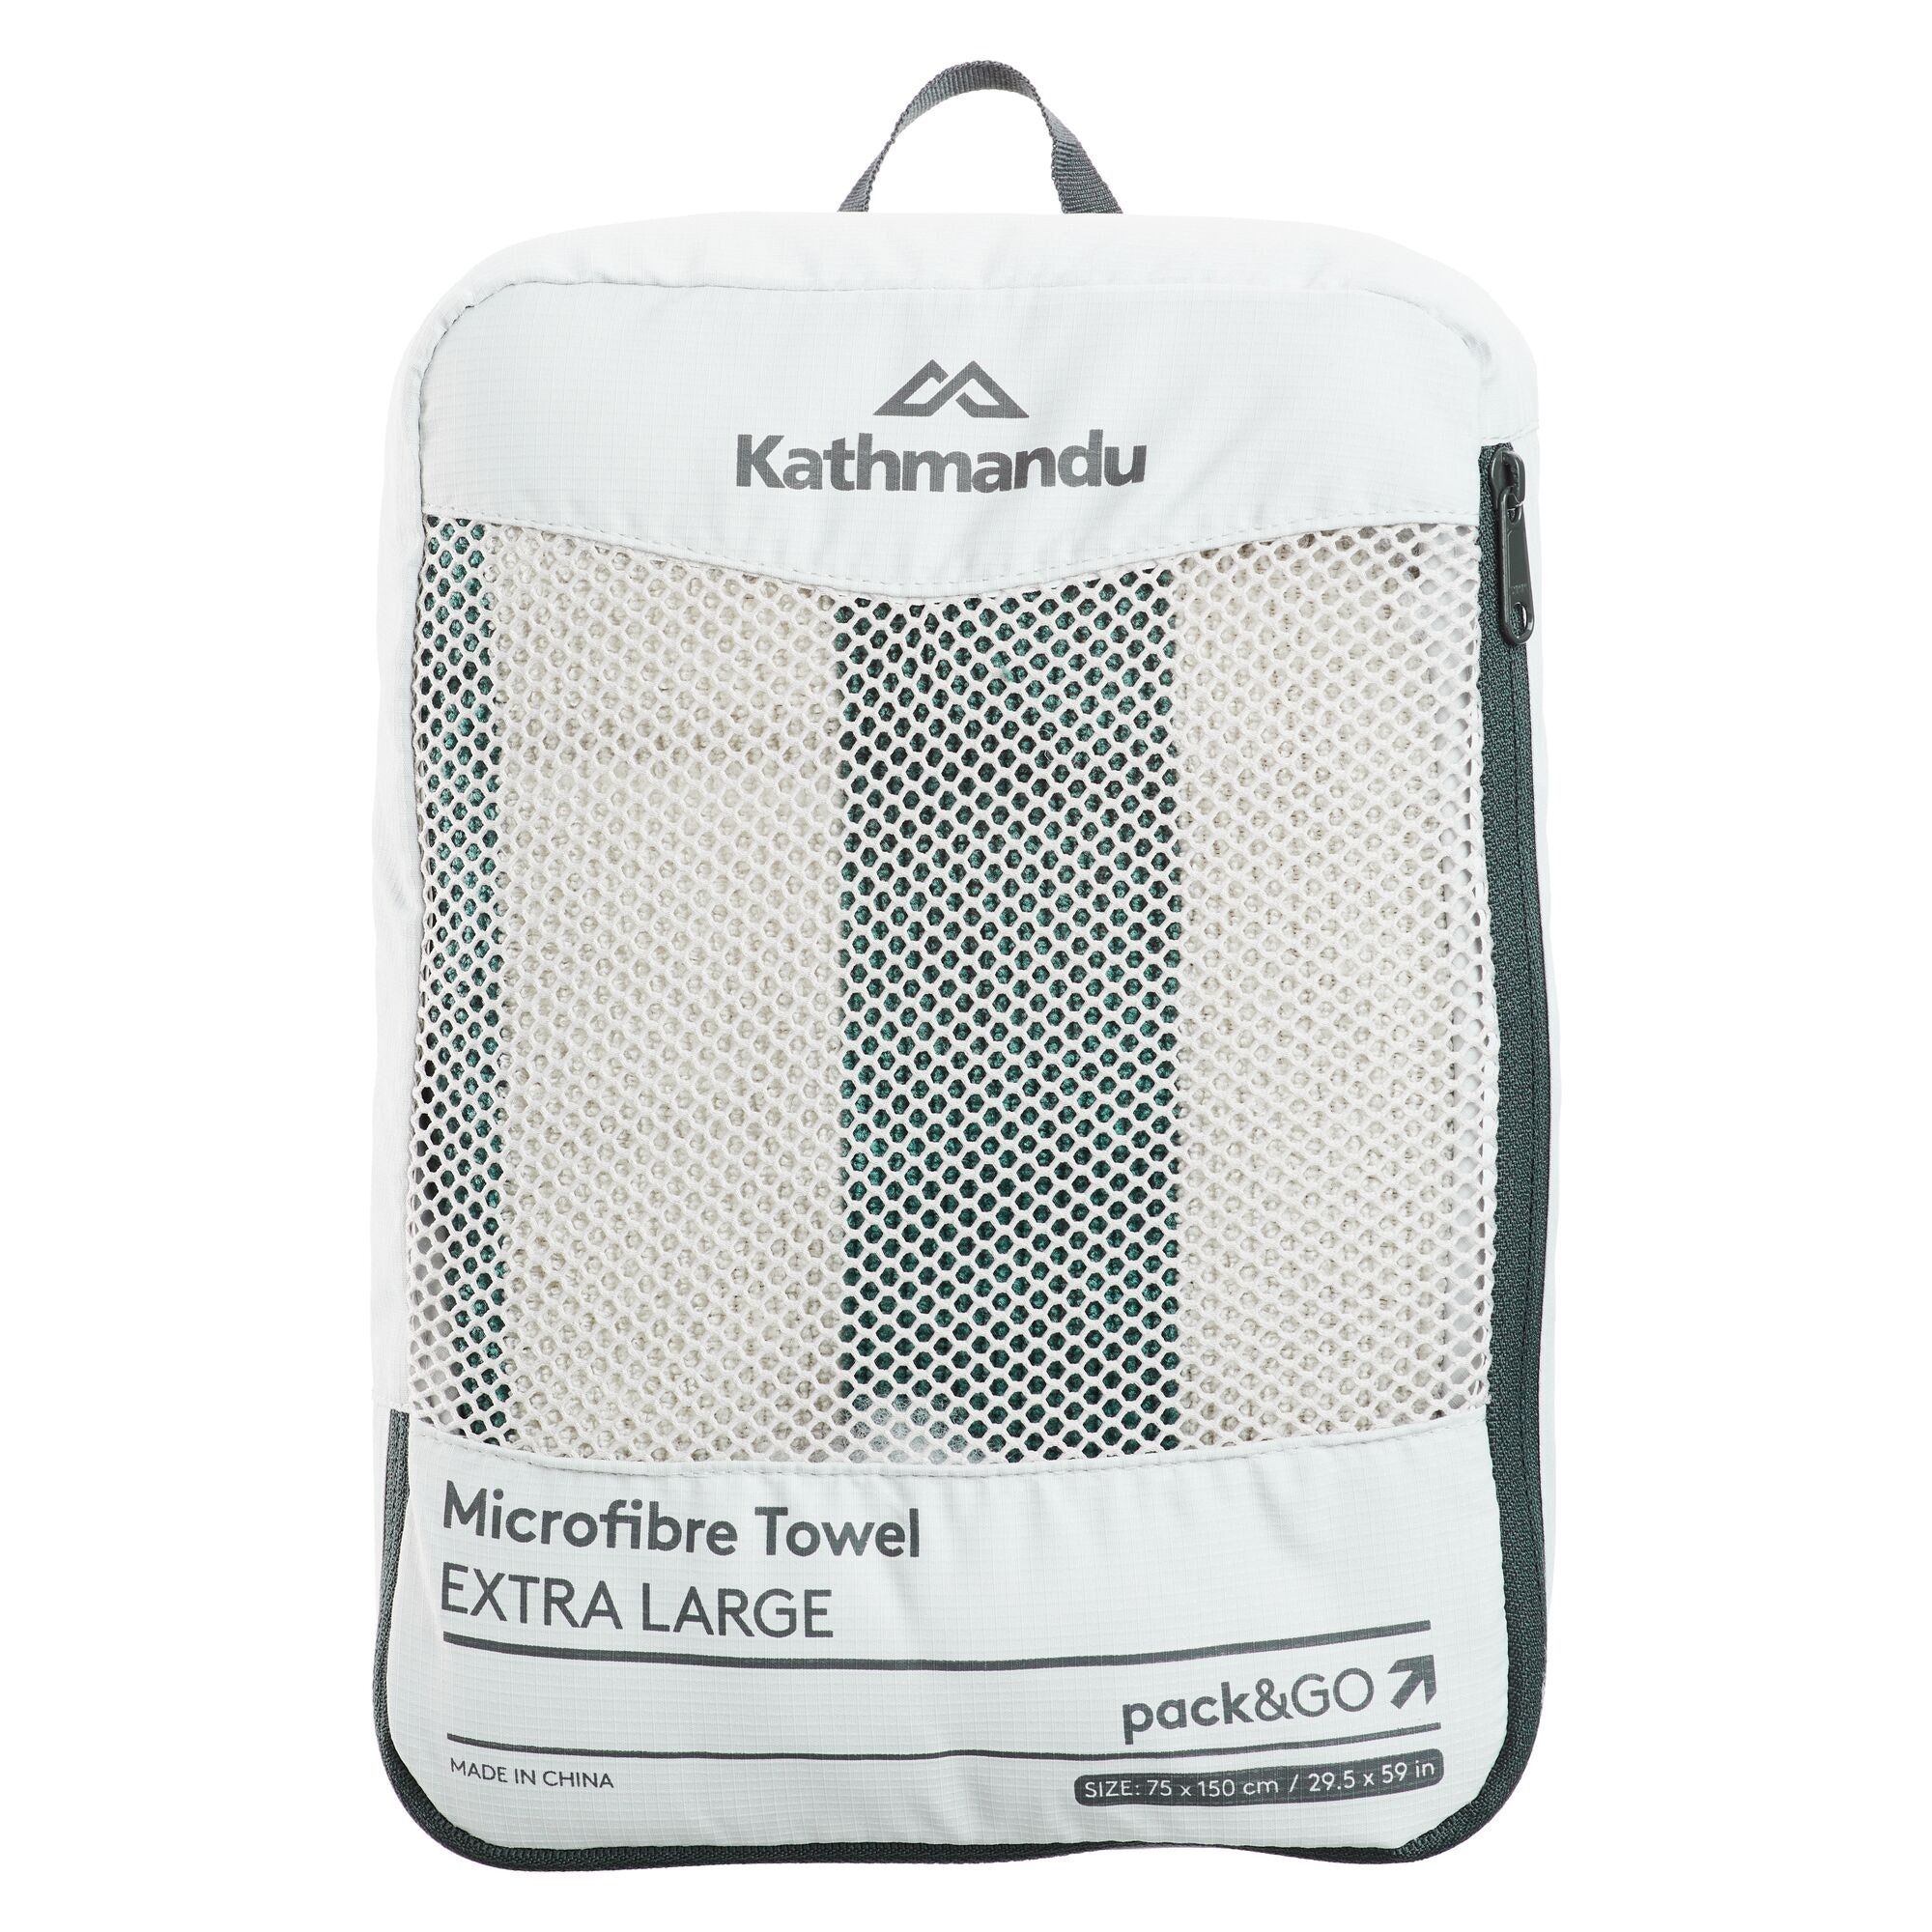 NEW-Kathmandu-Microfibre-Extra-Large-Compact-Lightweight-Quick-Drying-Soft-Towel thumbnail 11